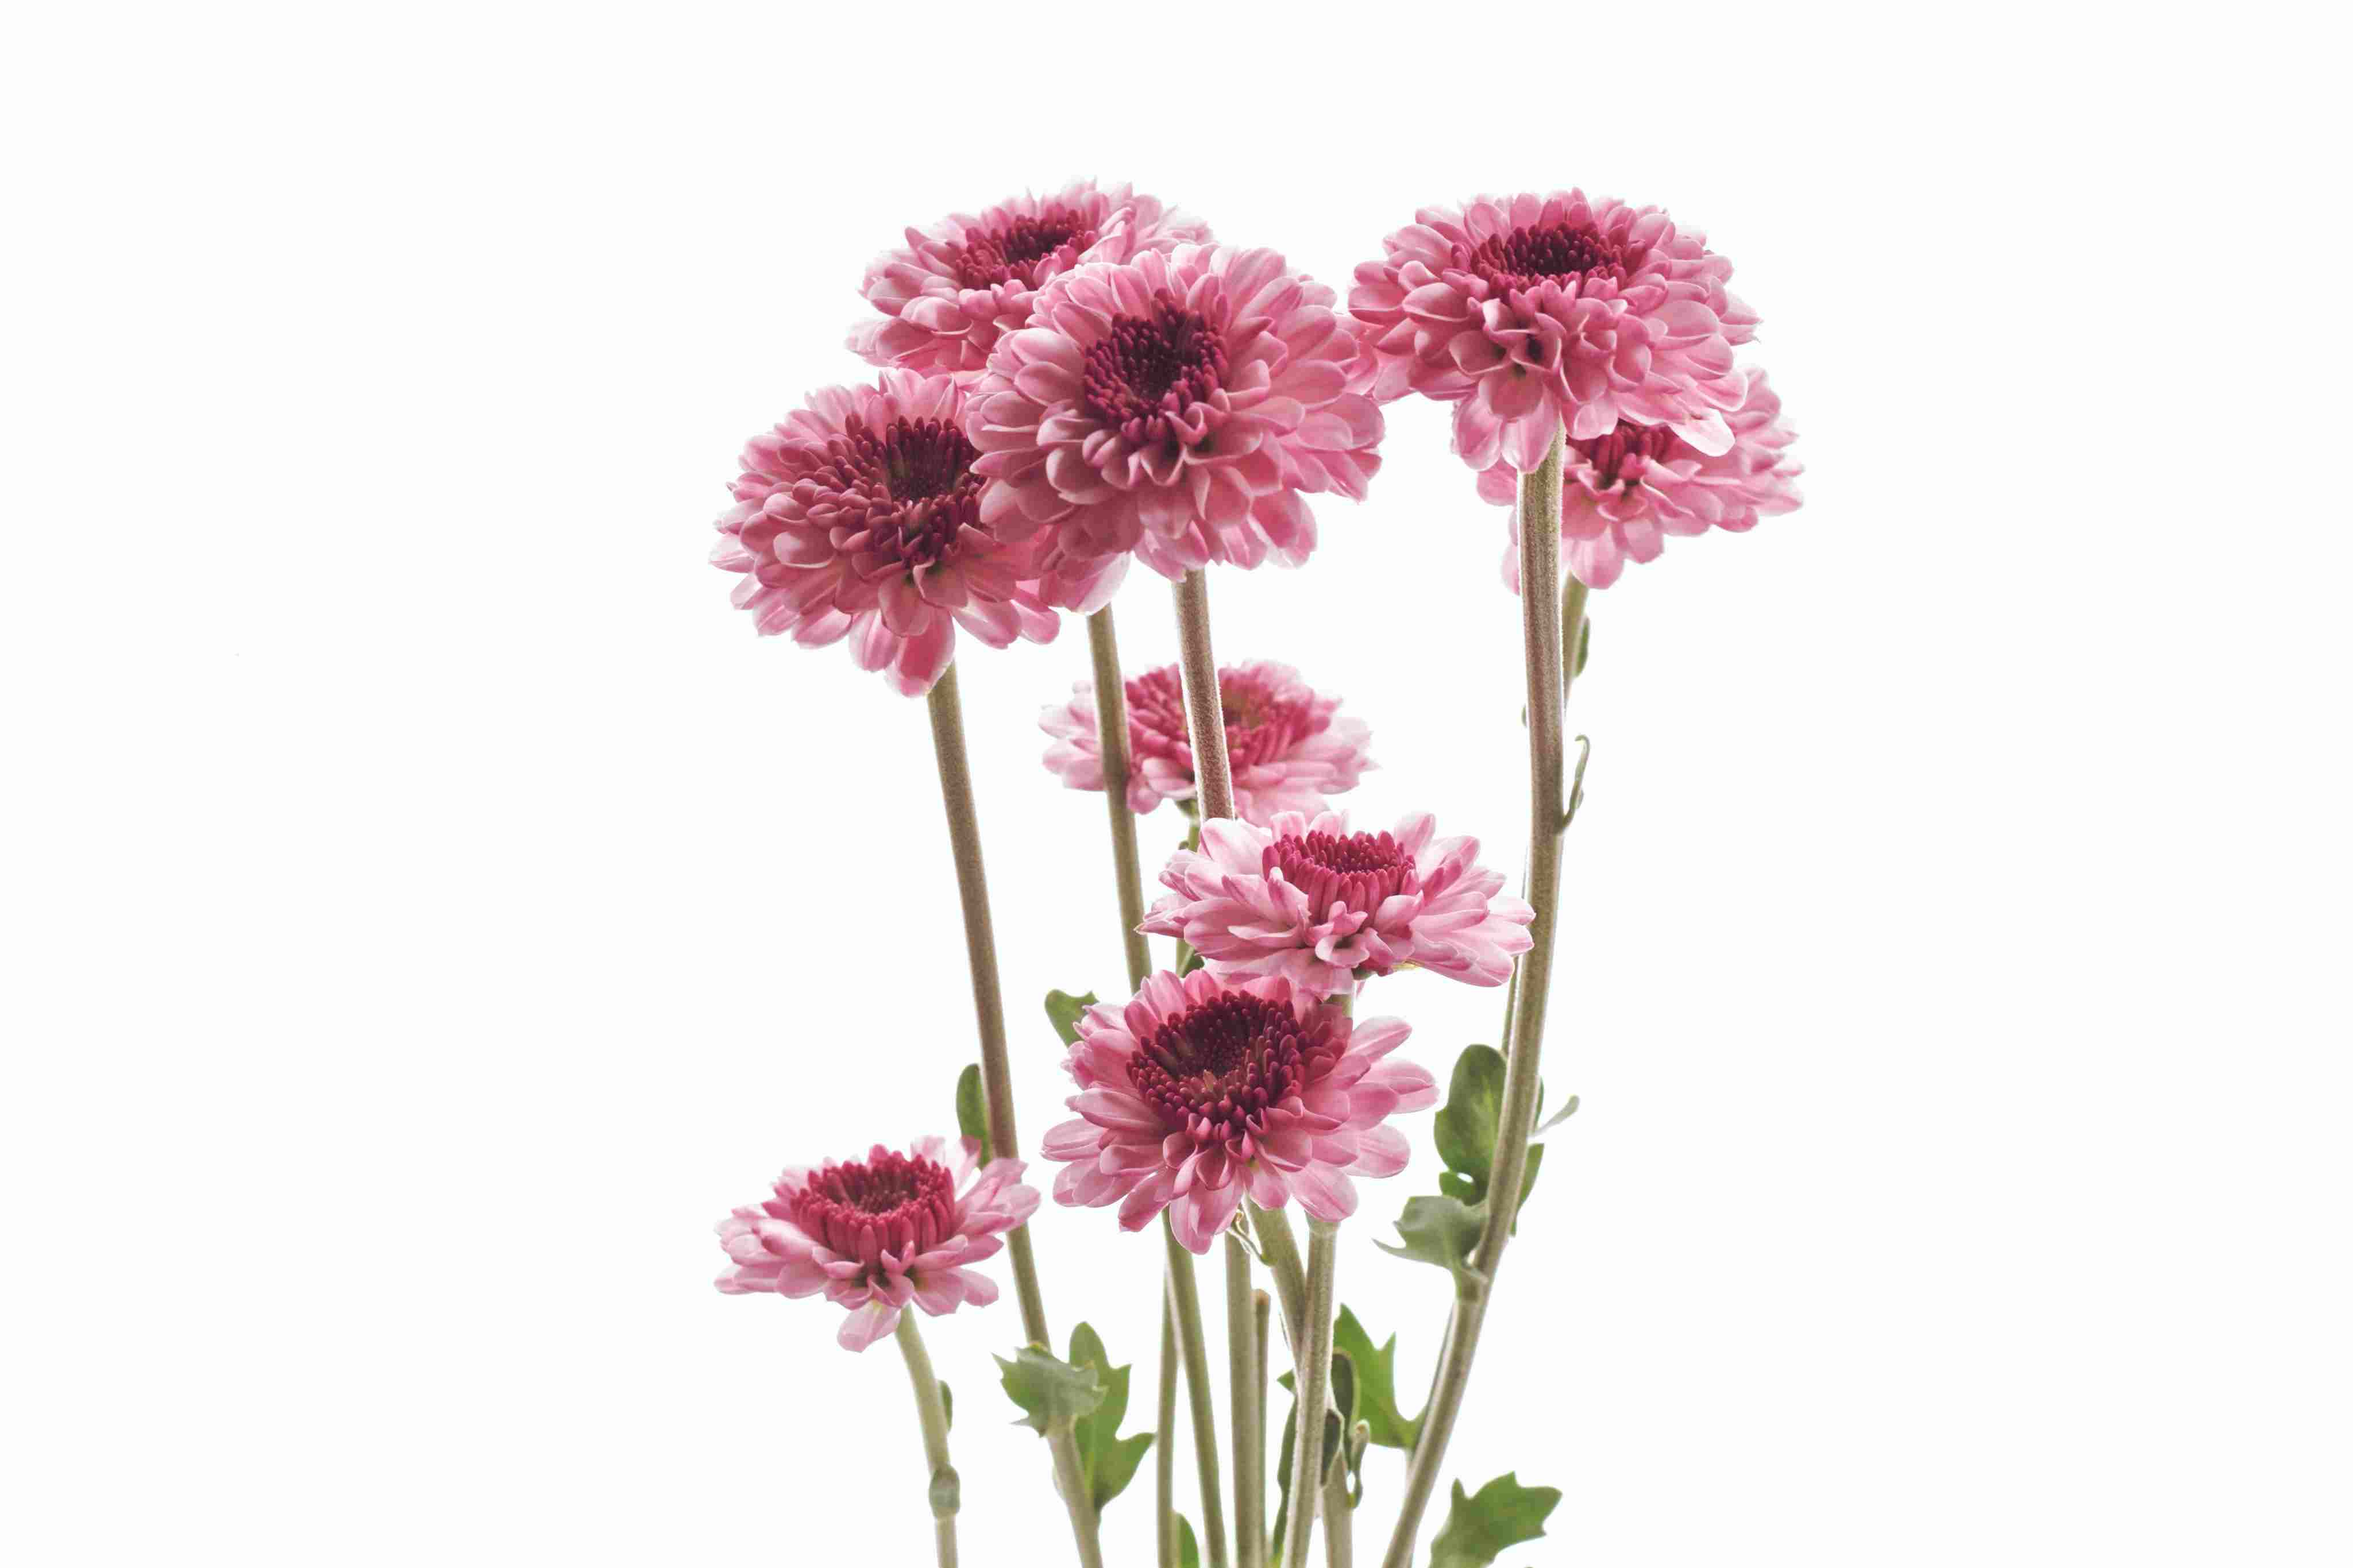 Chrysanthemums Against White Background